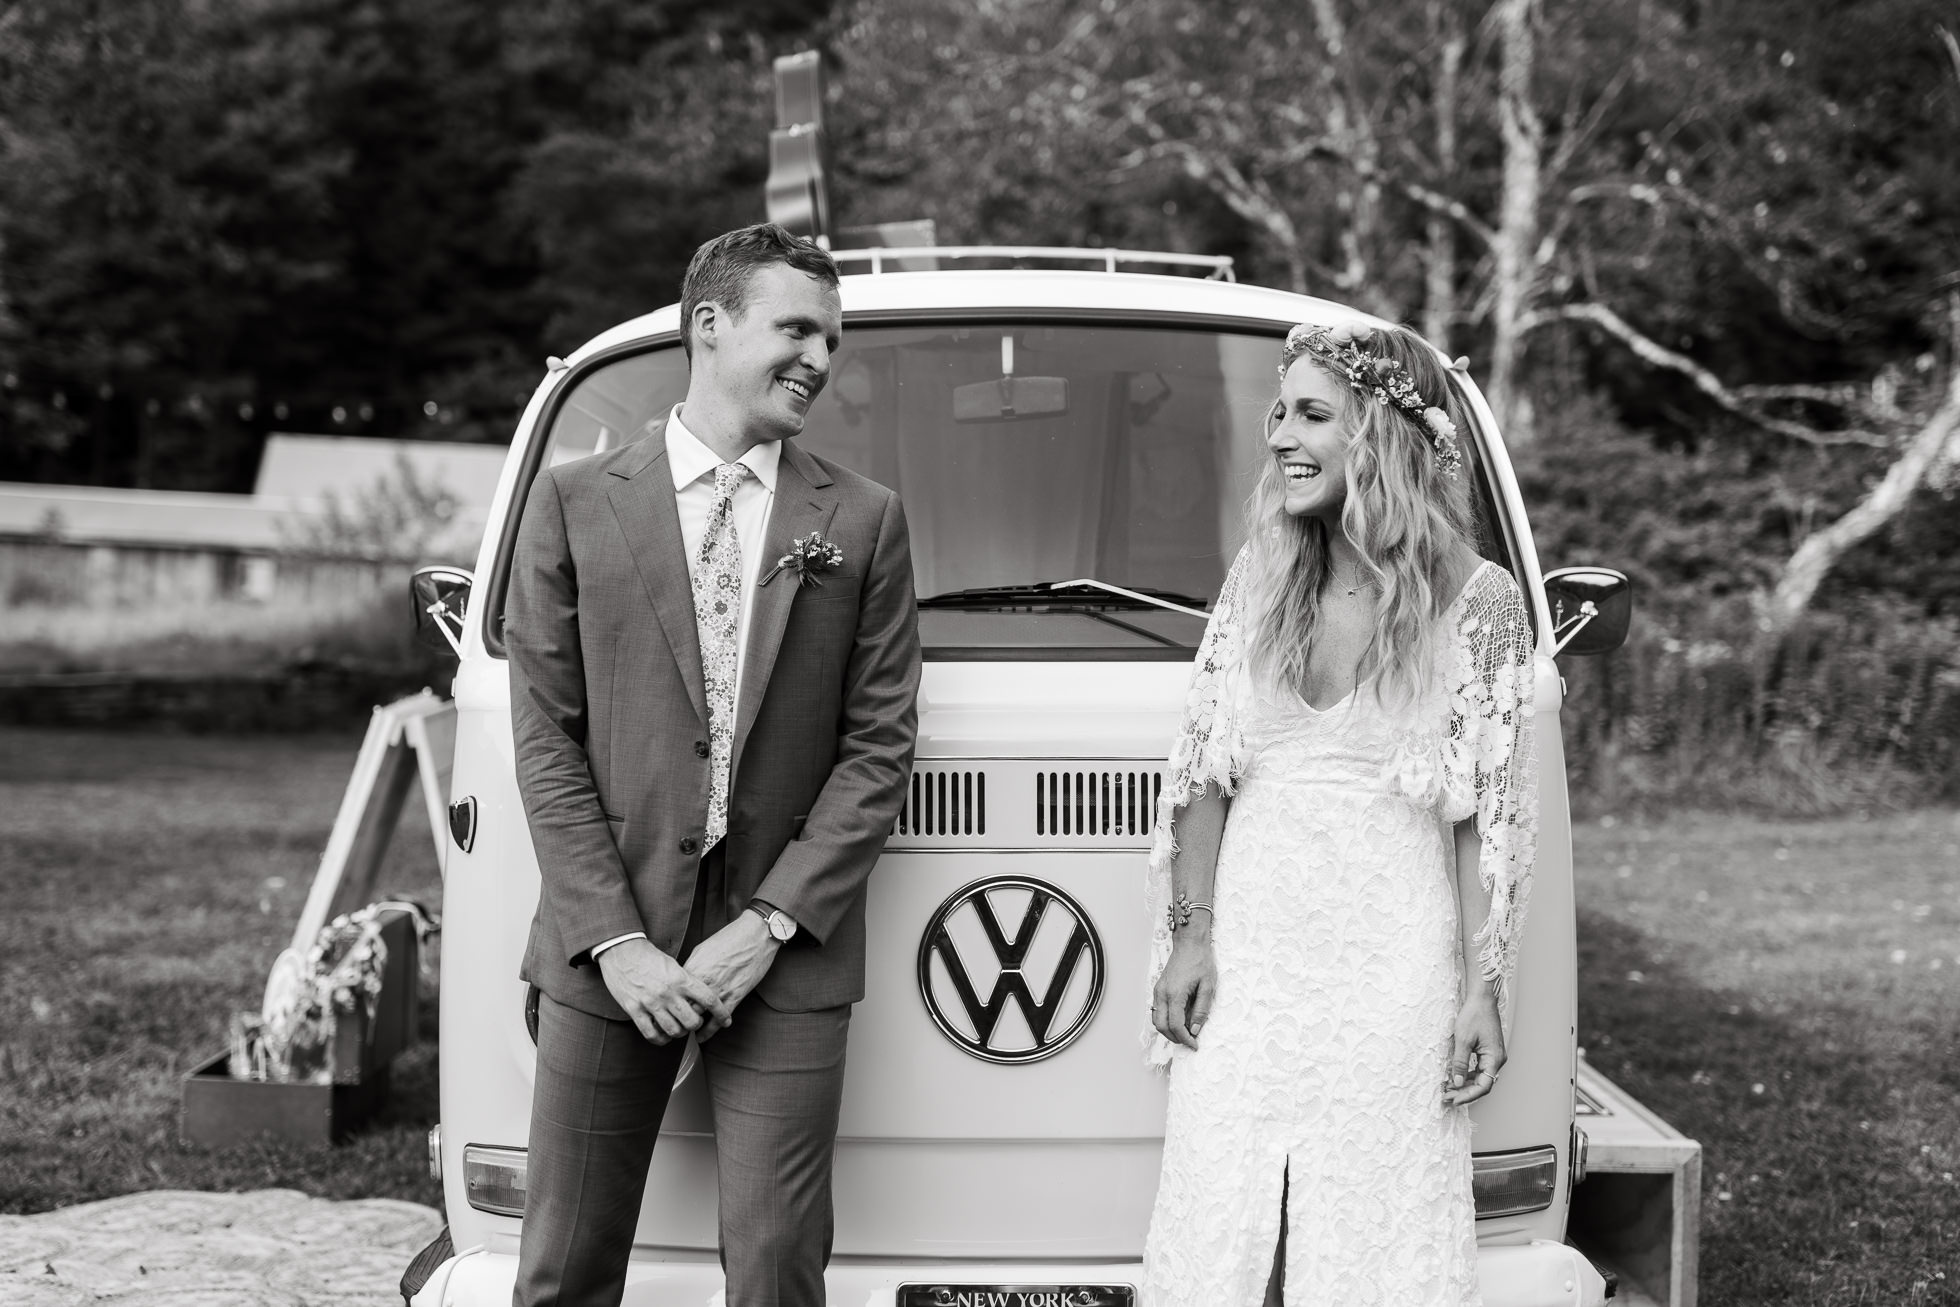 vw bus wedding portrait